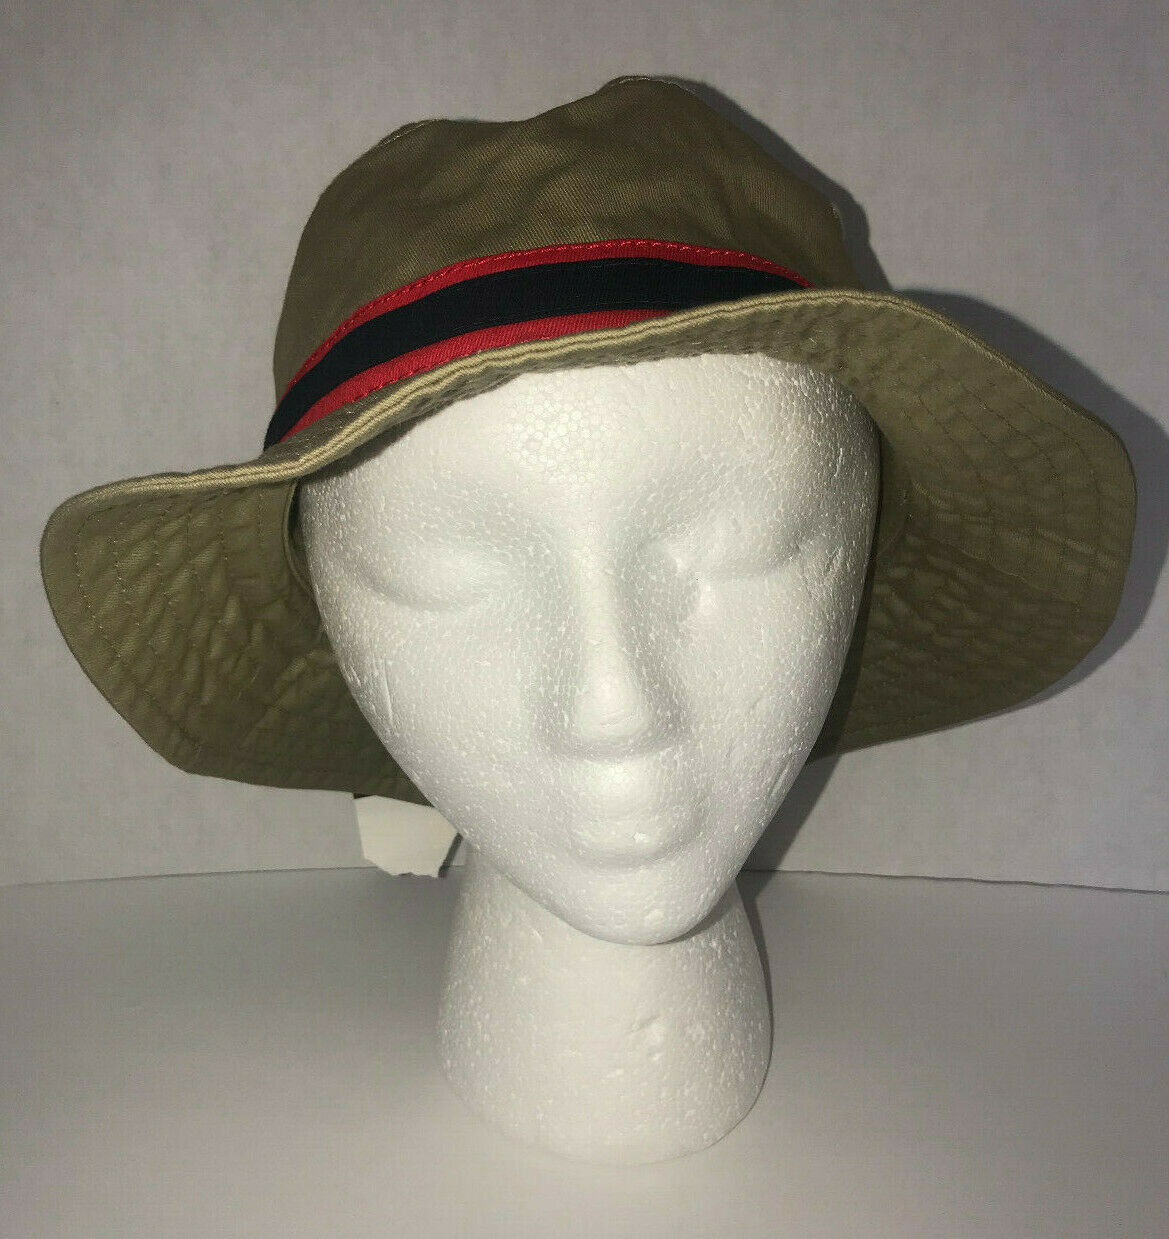 Primary image for Fishing Hat Tan Red and Black New OSFA